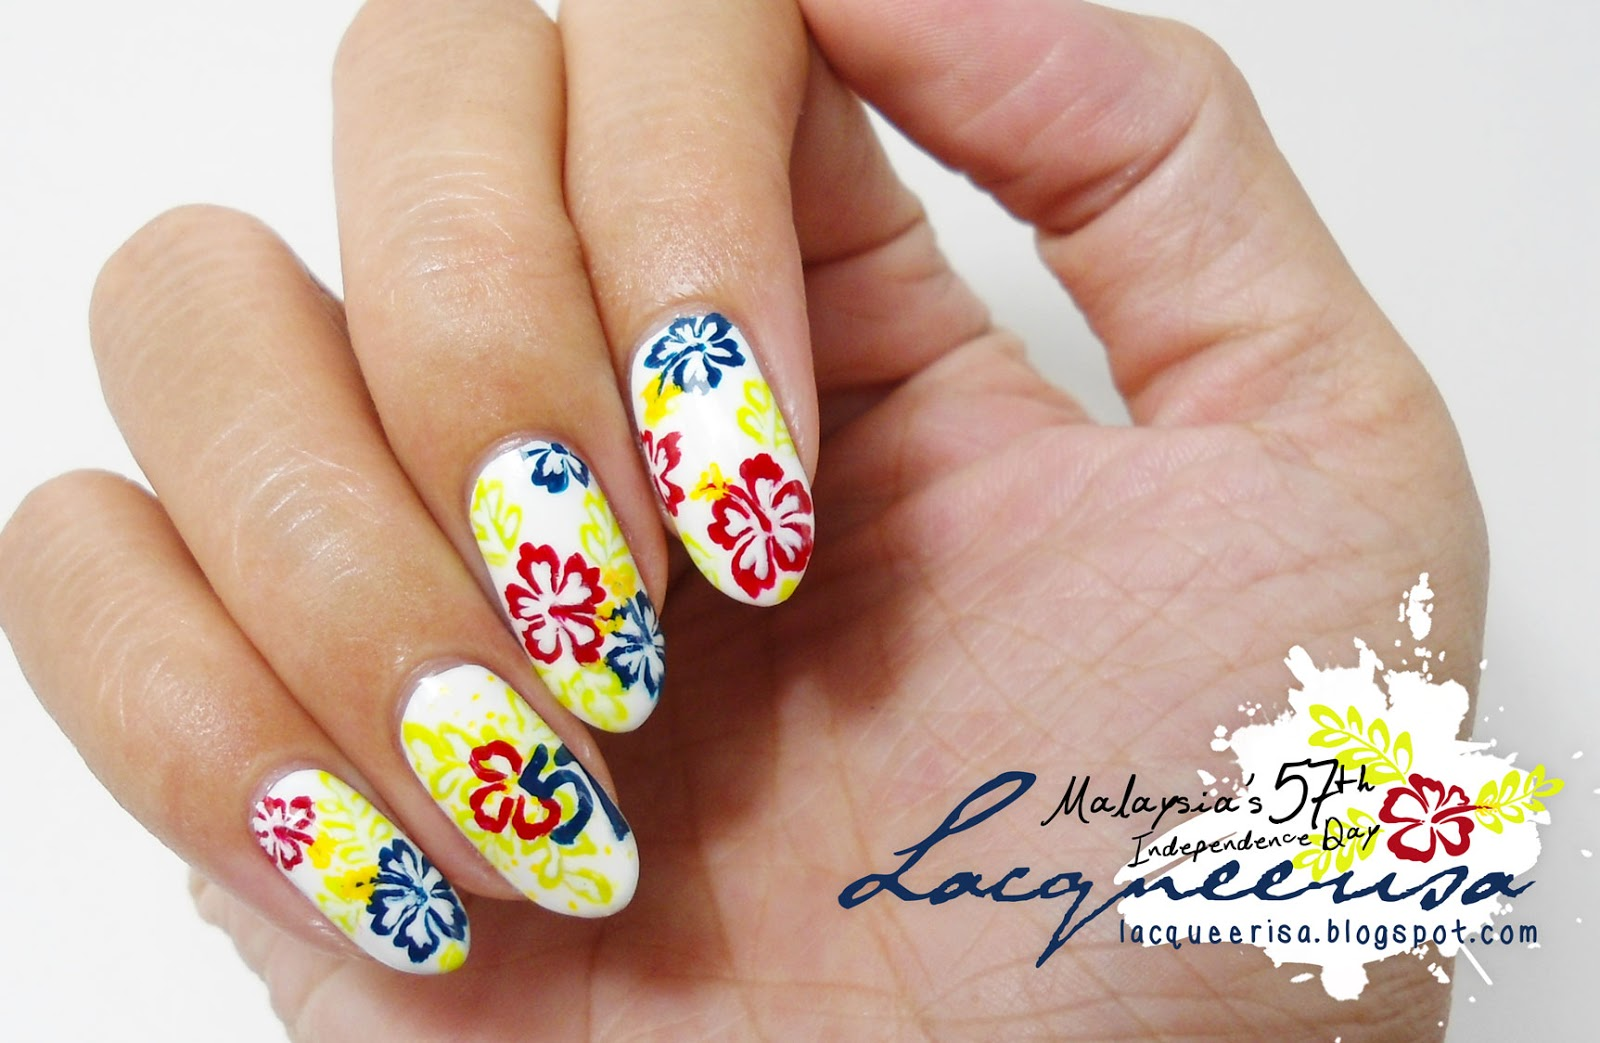 Malaysia's 57th Independence Day Nails lacqueerisa.blogspot.com